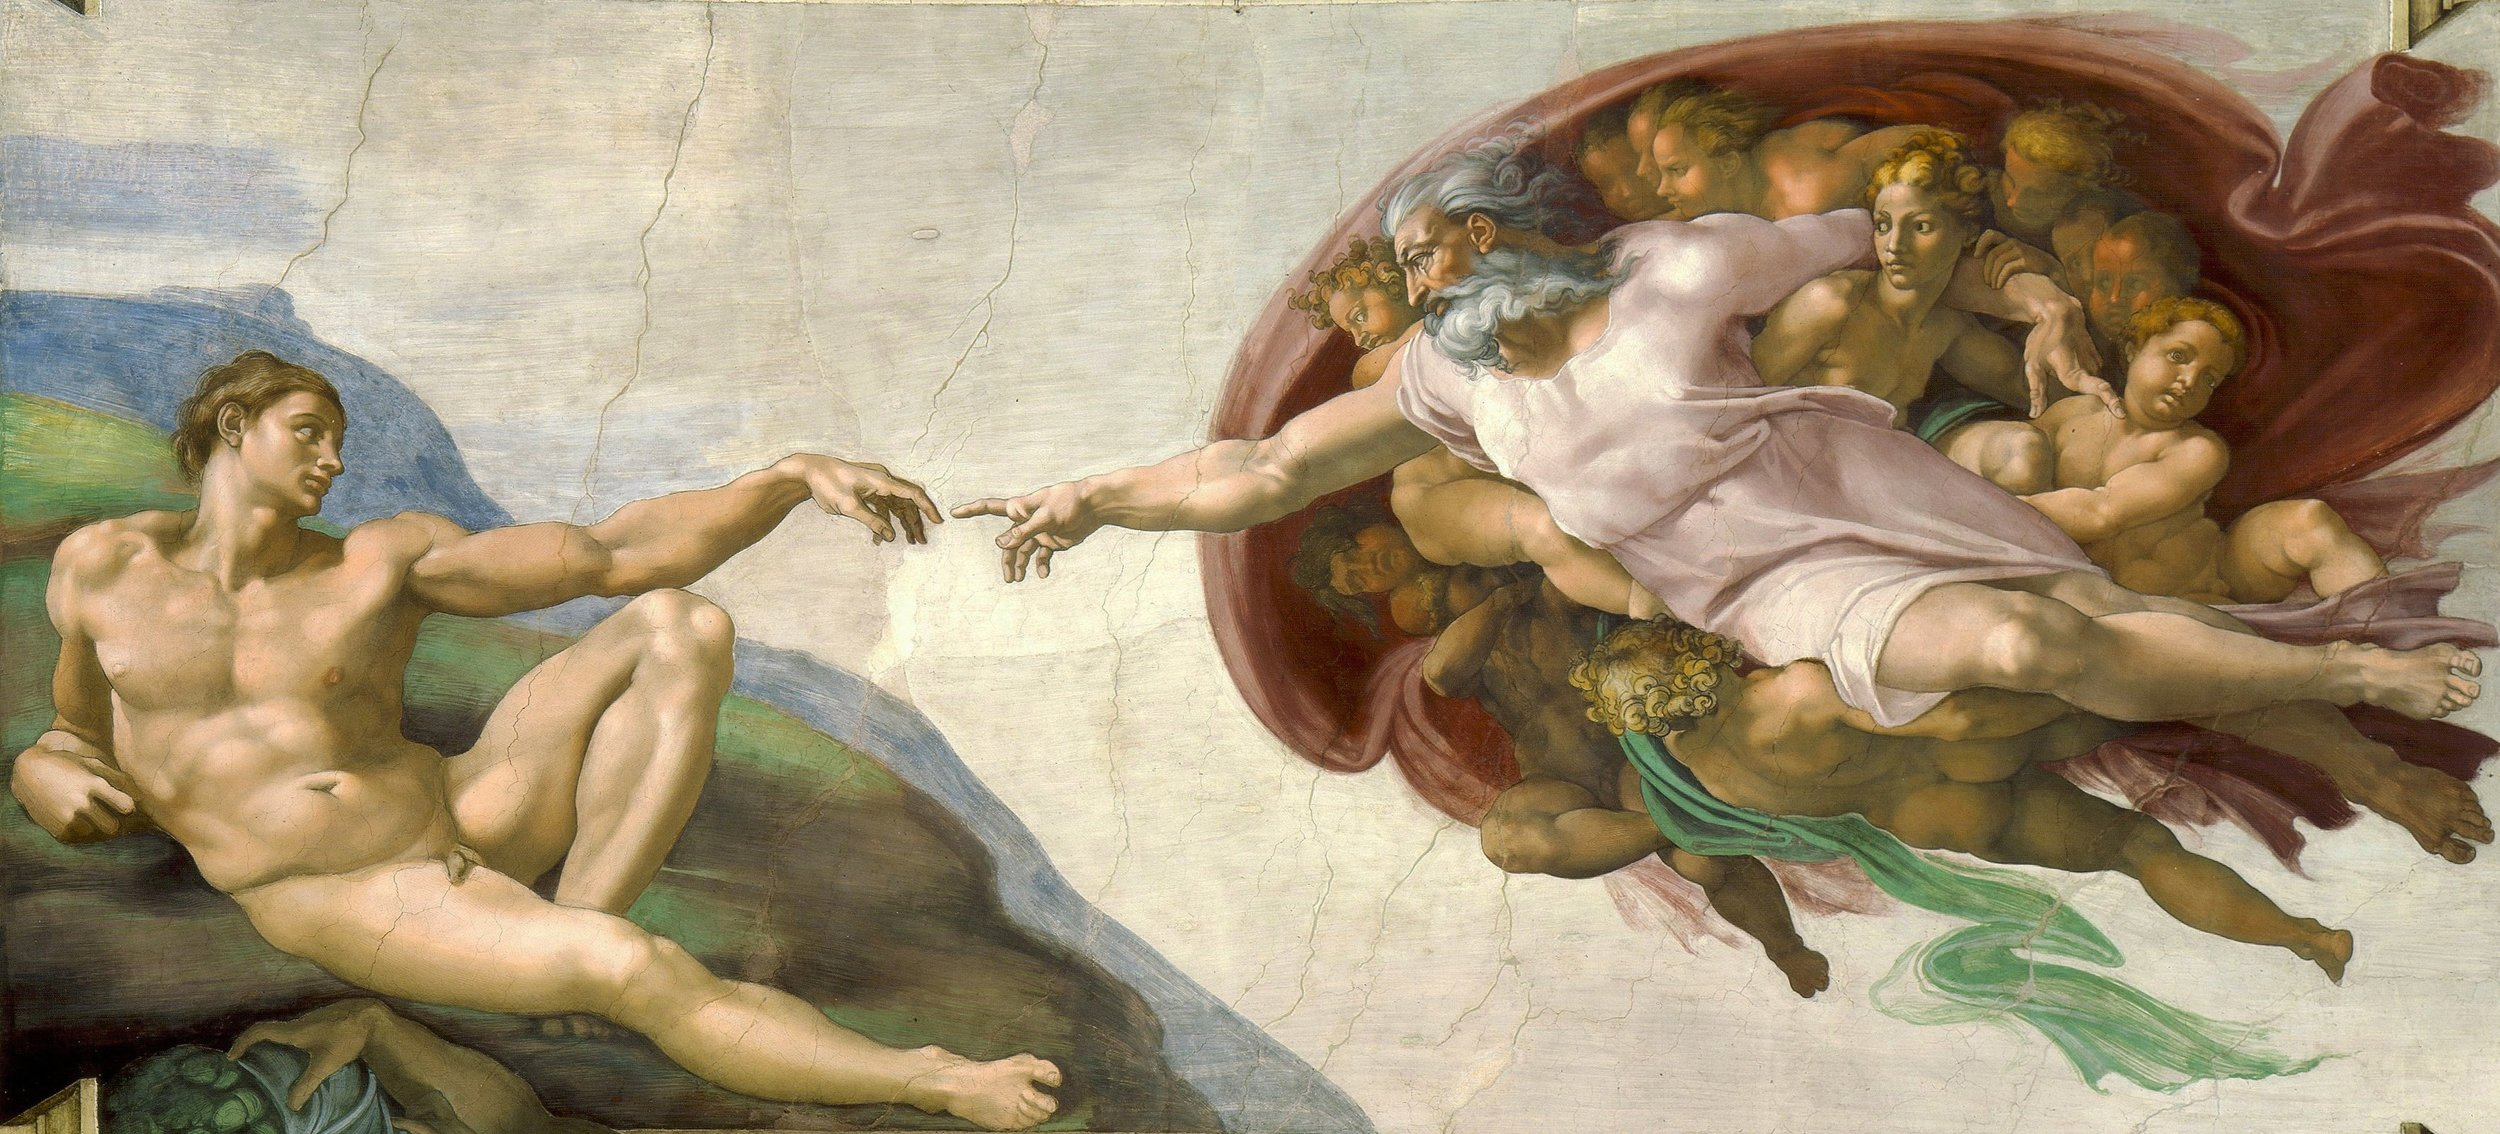 Michelangelo_-_Creation_of_Adam_(cropped).jpg